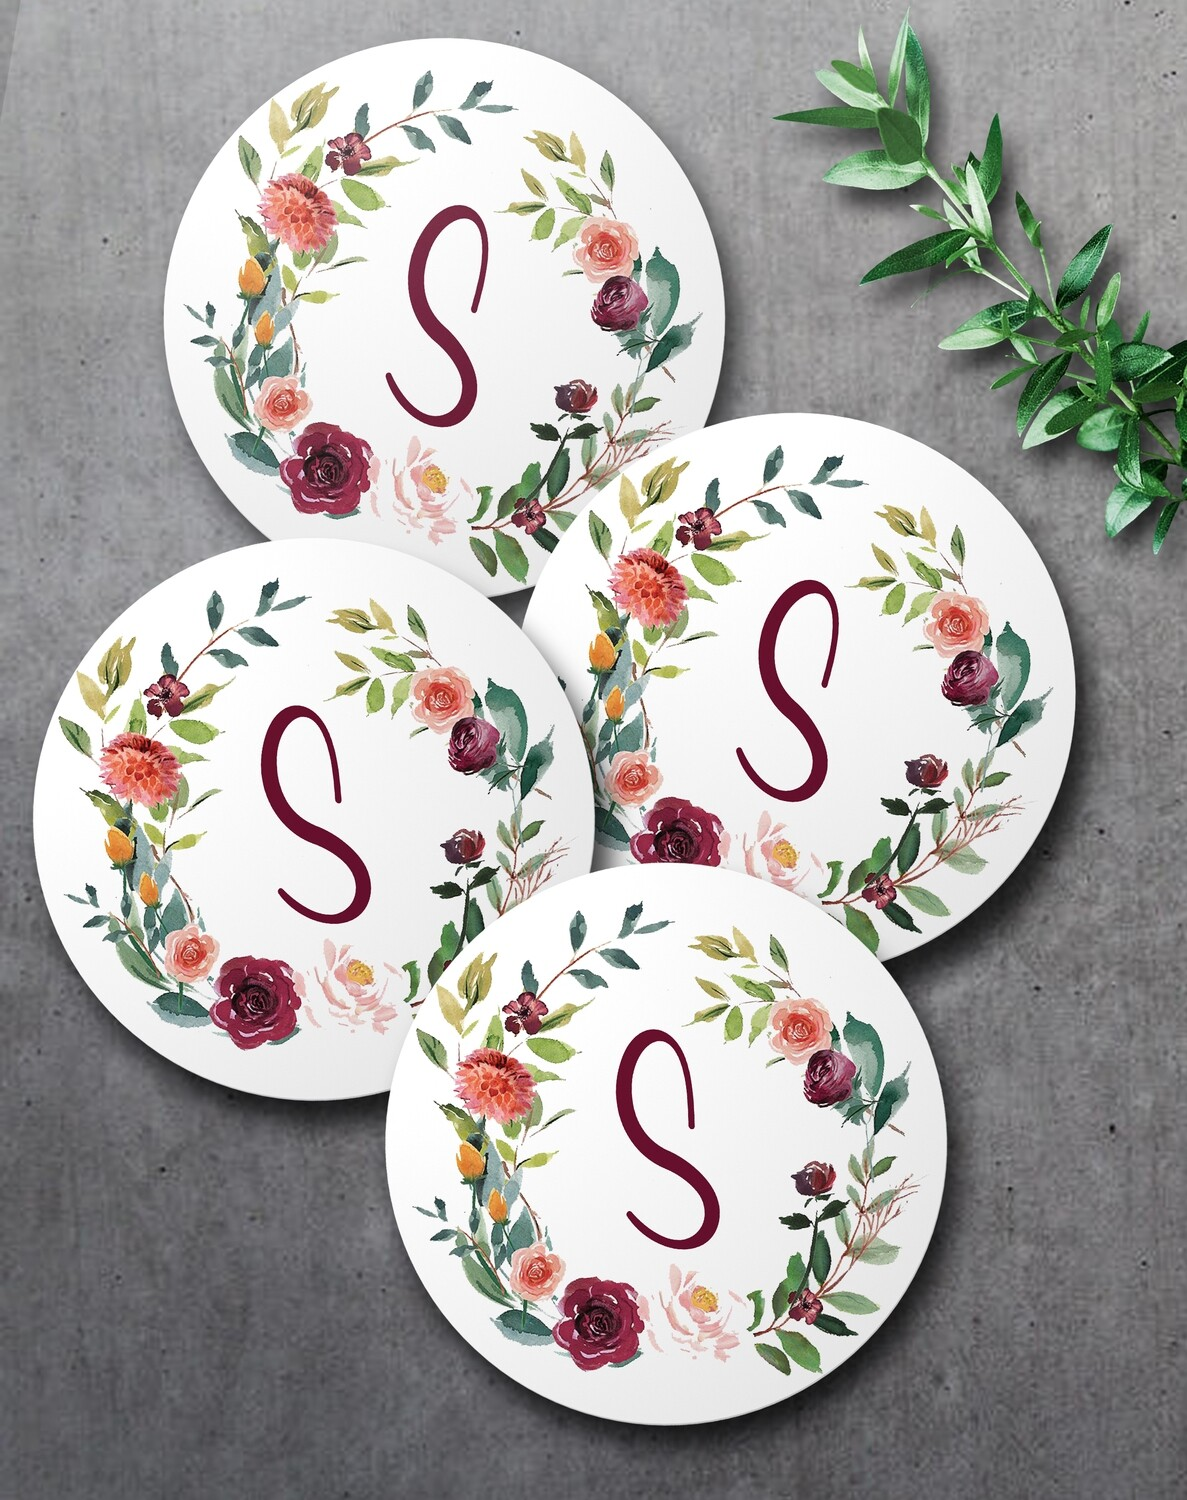 Floral Wreath Coaster Set (4)